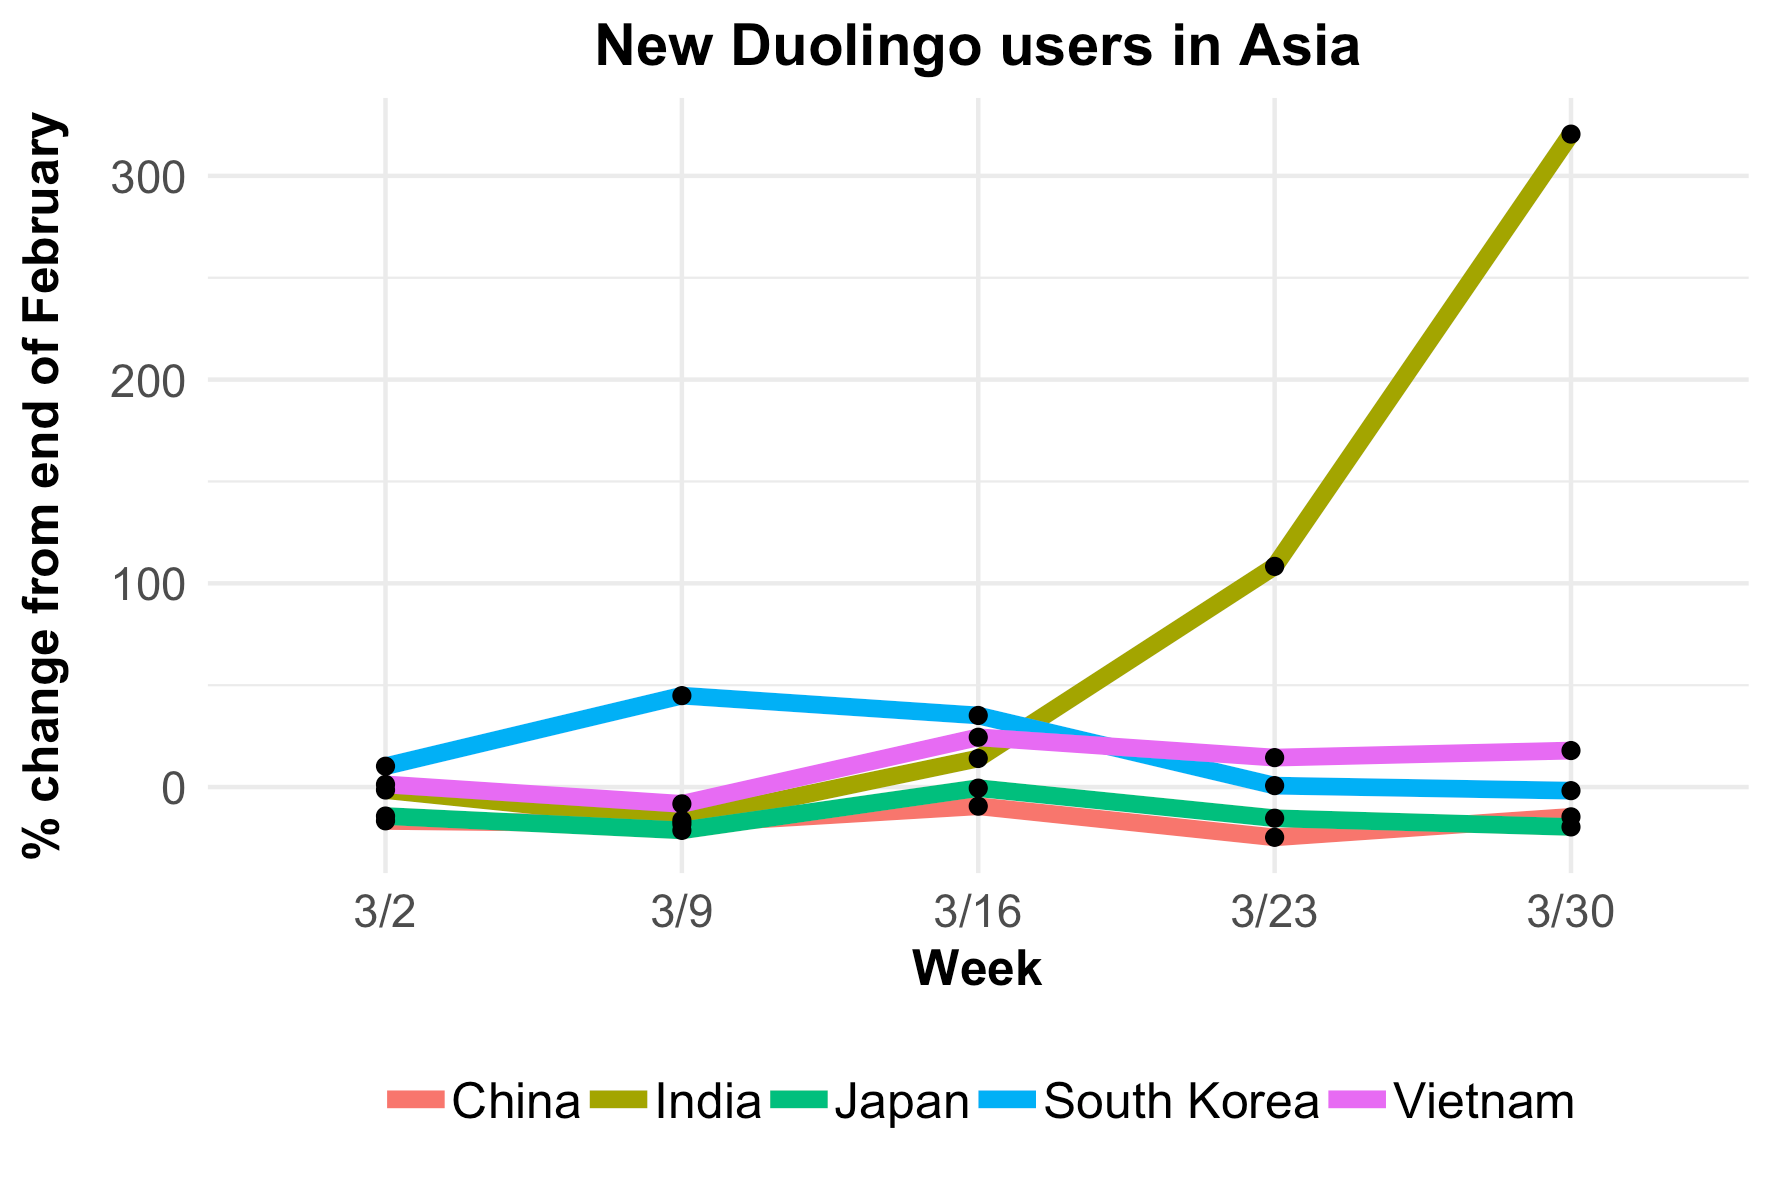 fig5-new-user-growth-asia